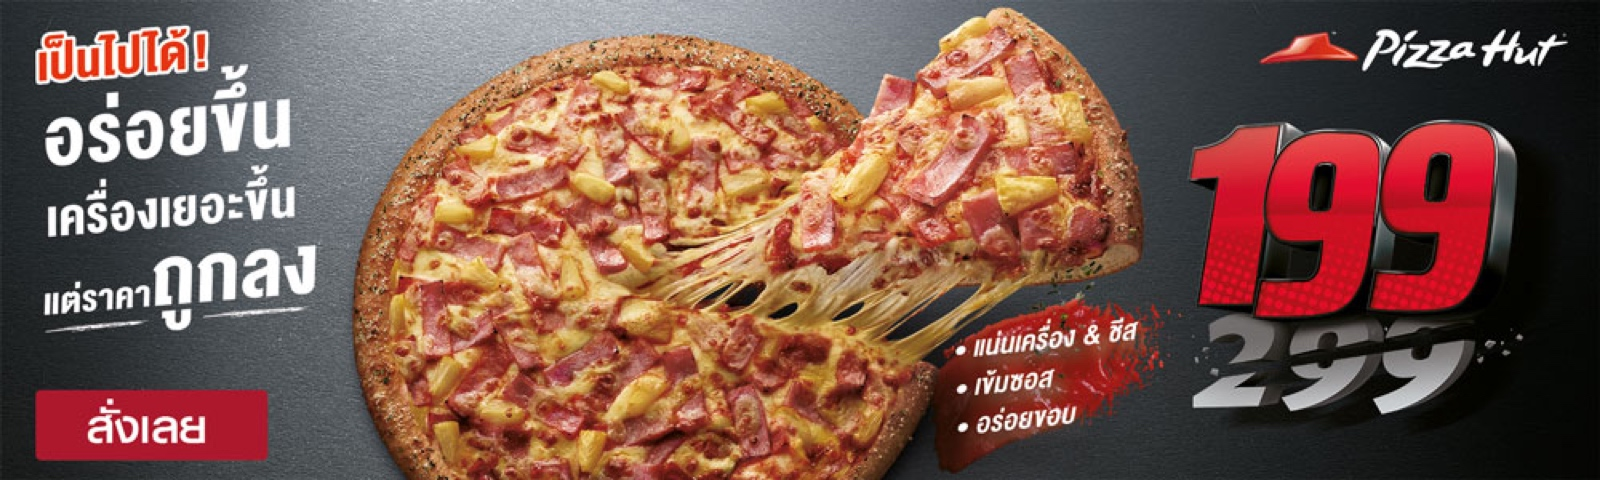 promotion of pizza hut Pizza hut celebrates math by giving out free pizza with national pi day promotion.